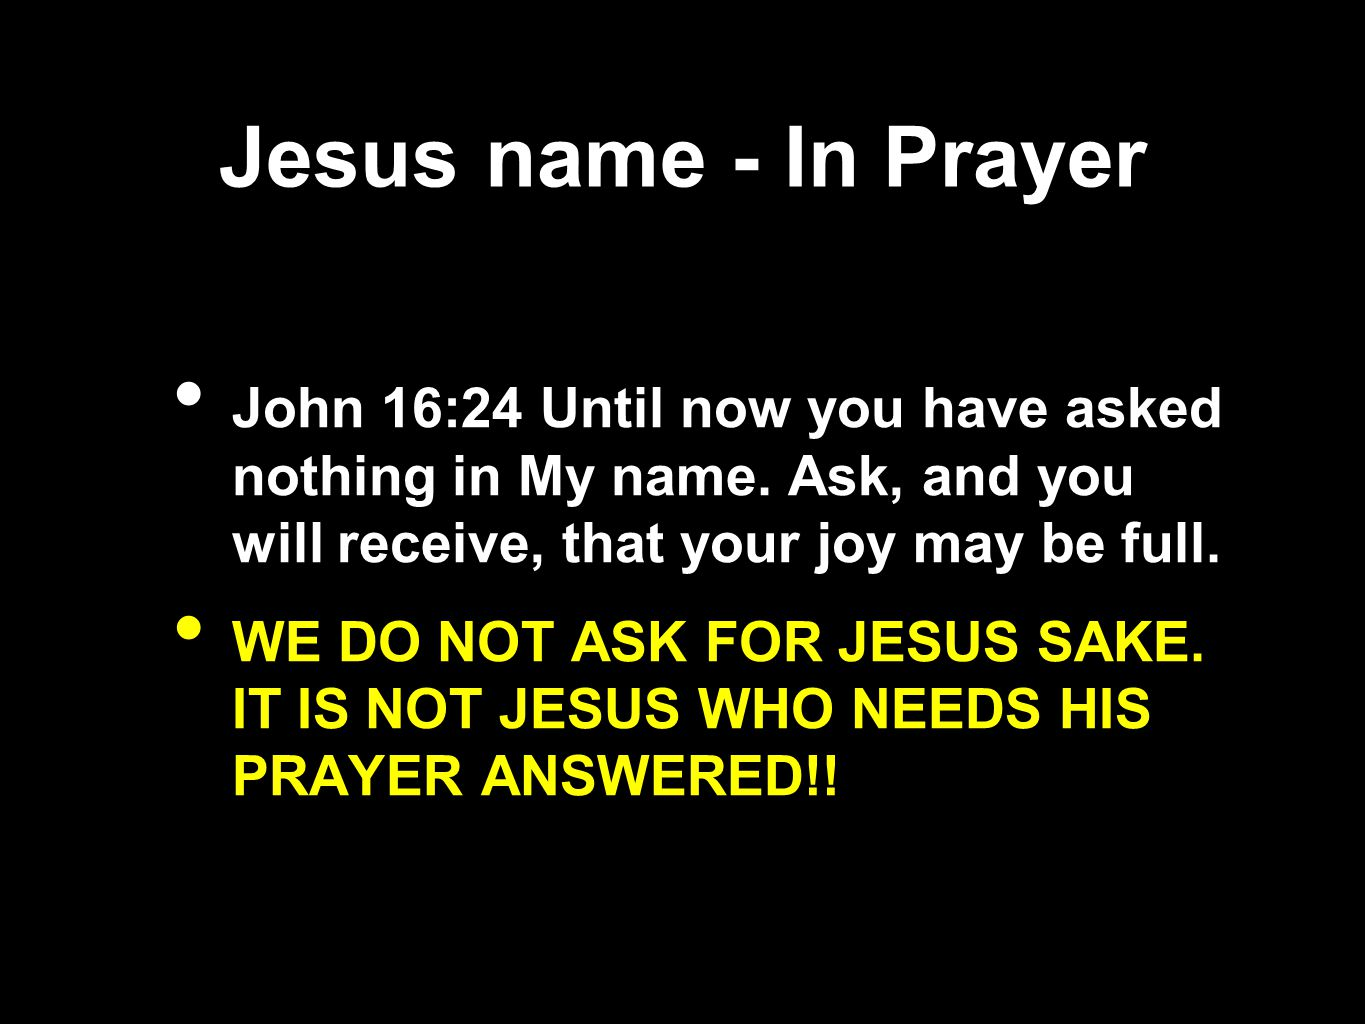 Jesus name - In Prayer John 16:24 Until now you have asked nothing in My name. Ask, and you will receive, that your joy may be full.